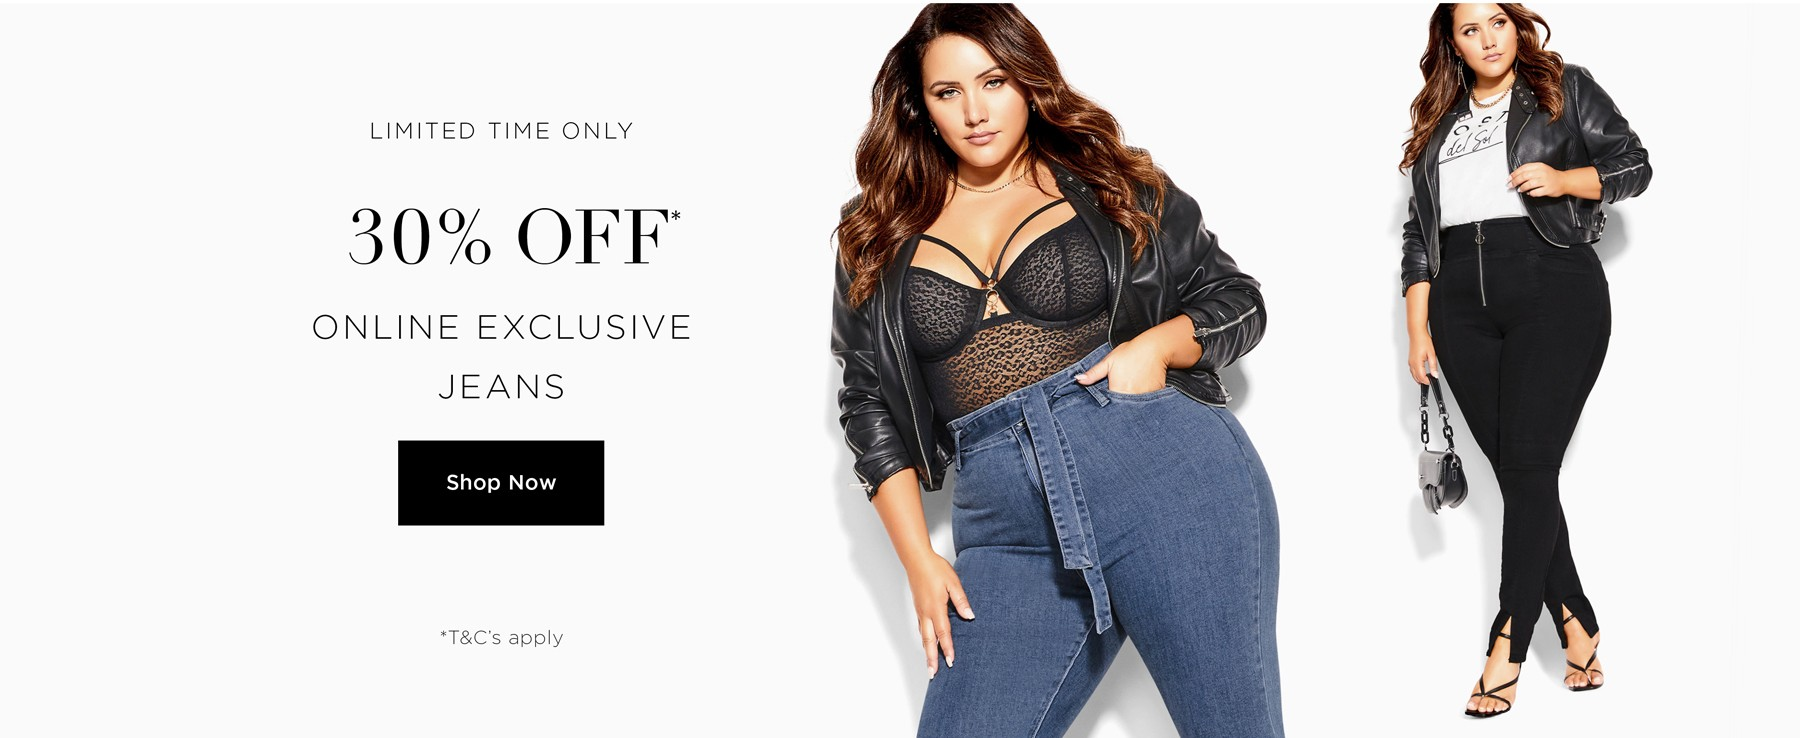 Exclusive Jeans Offer